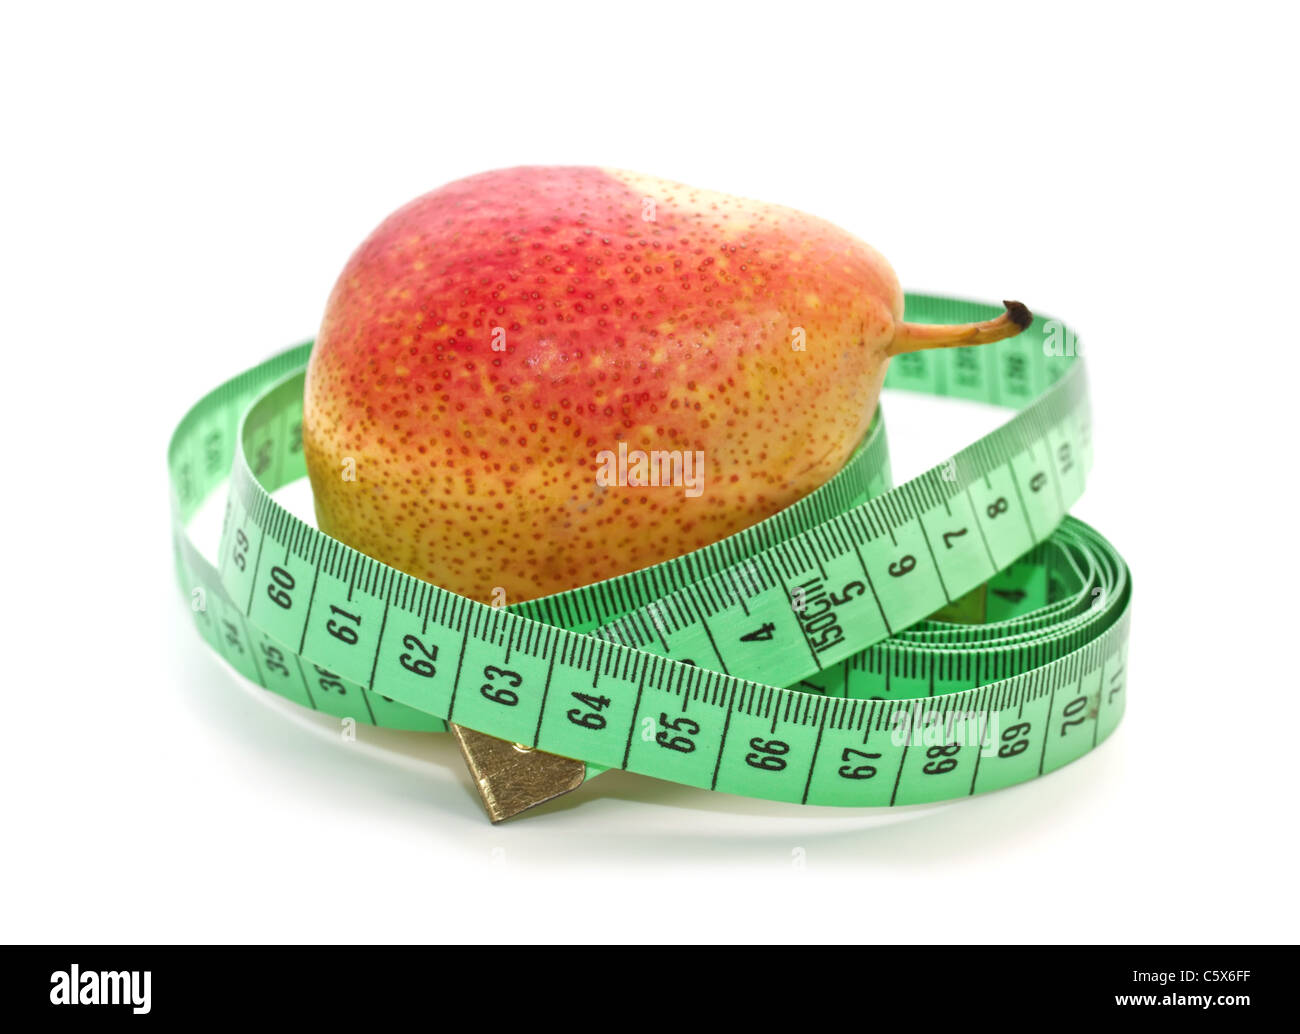 Ripe pear and measuring a meter on a white background - Stock Image